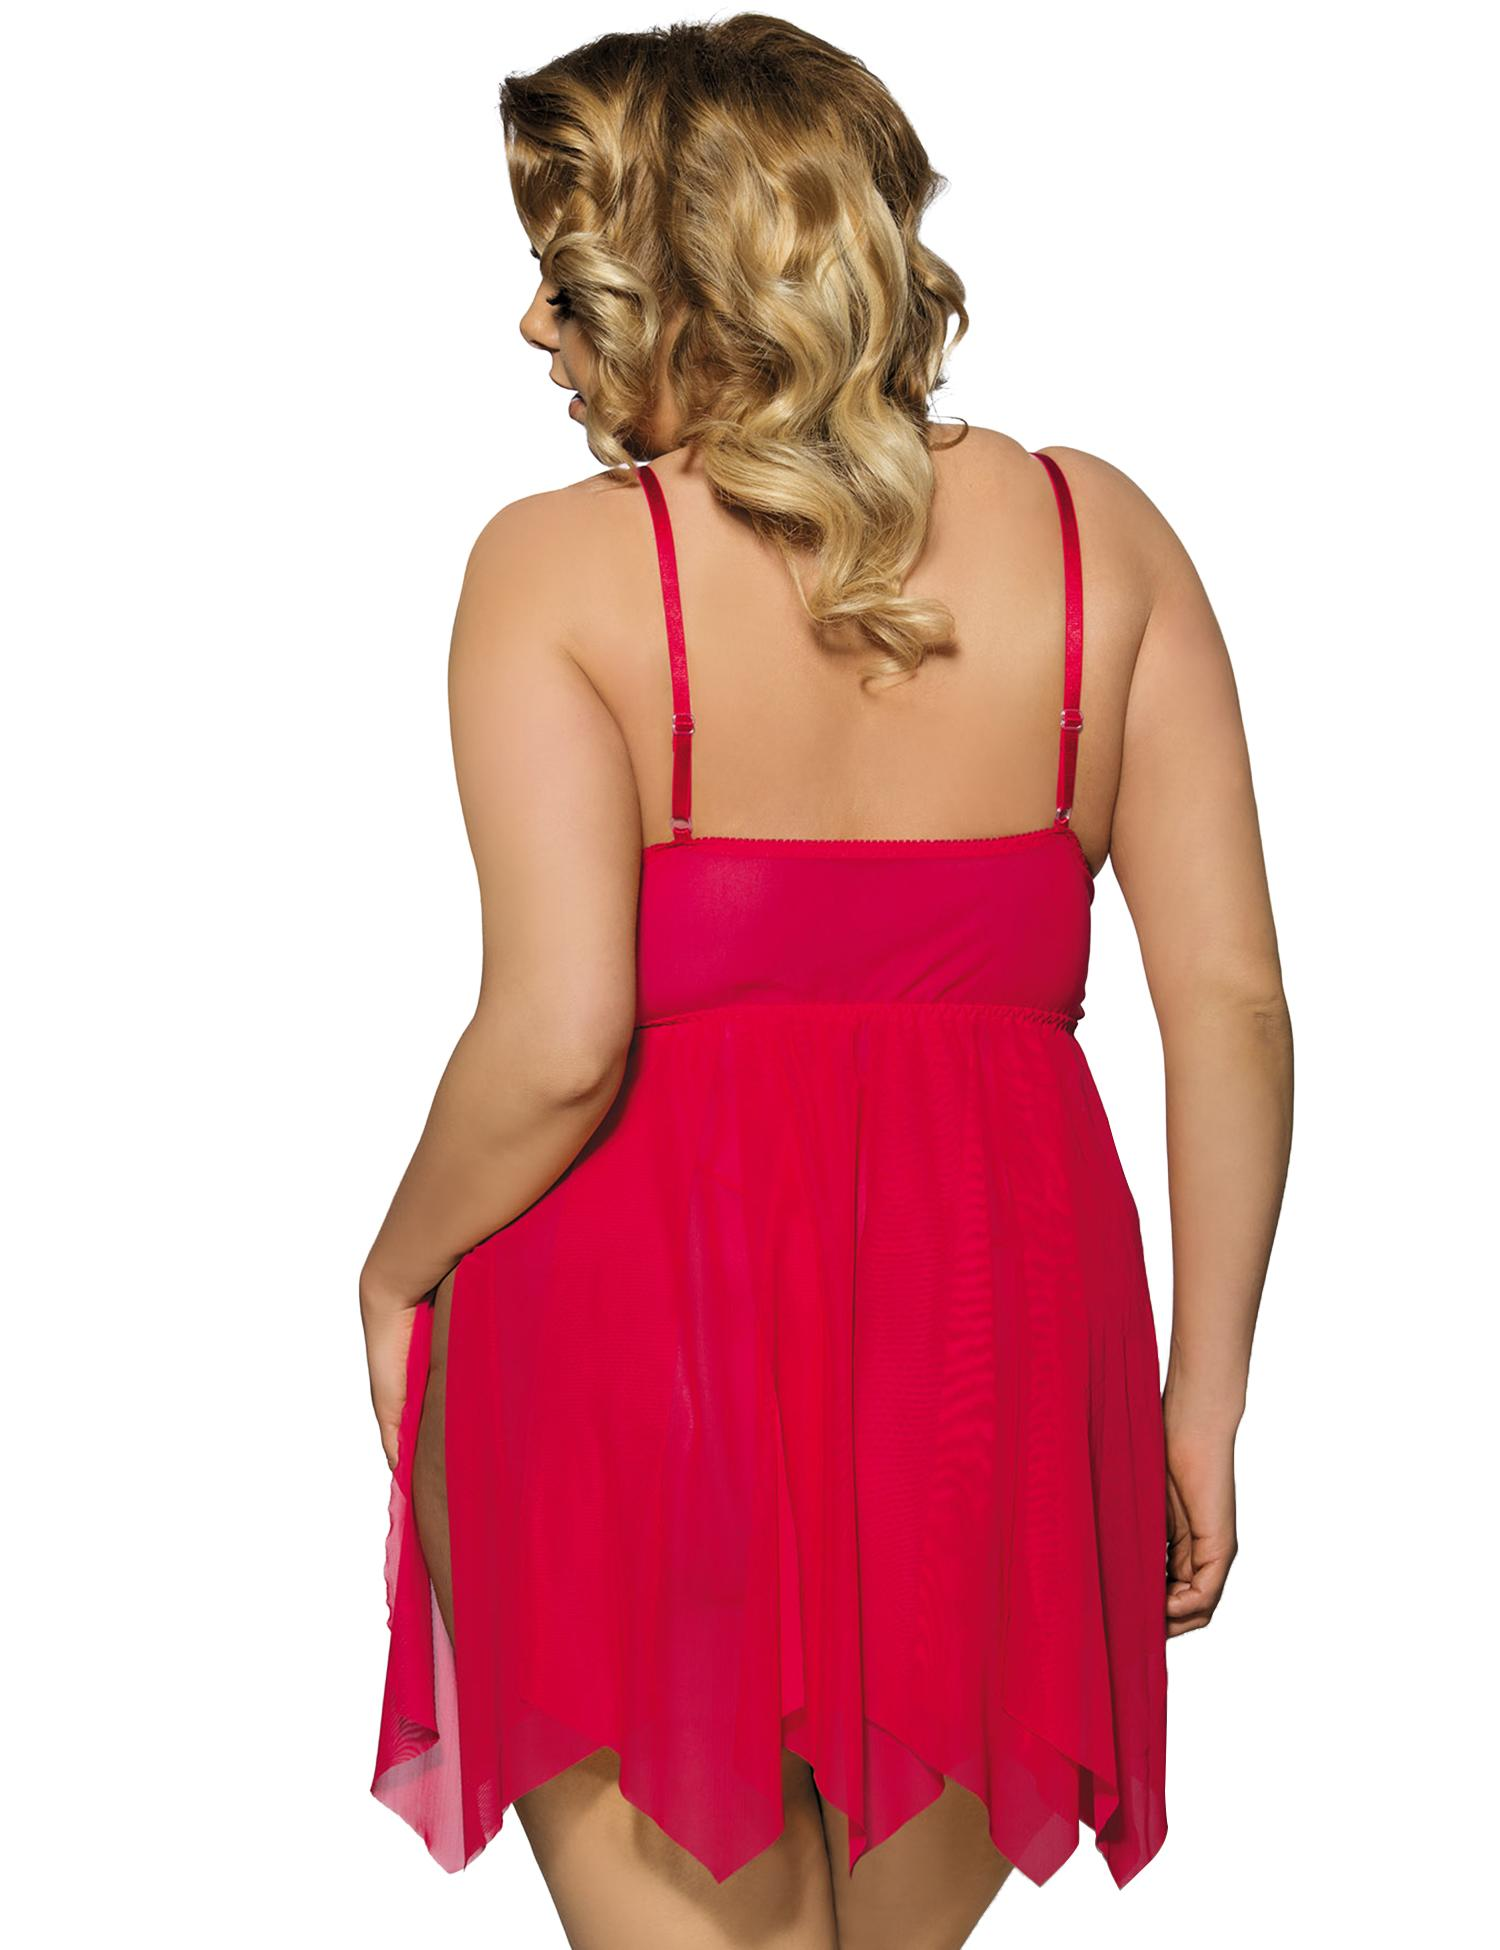 Flirty red lace babydoll rear view